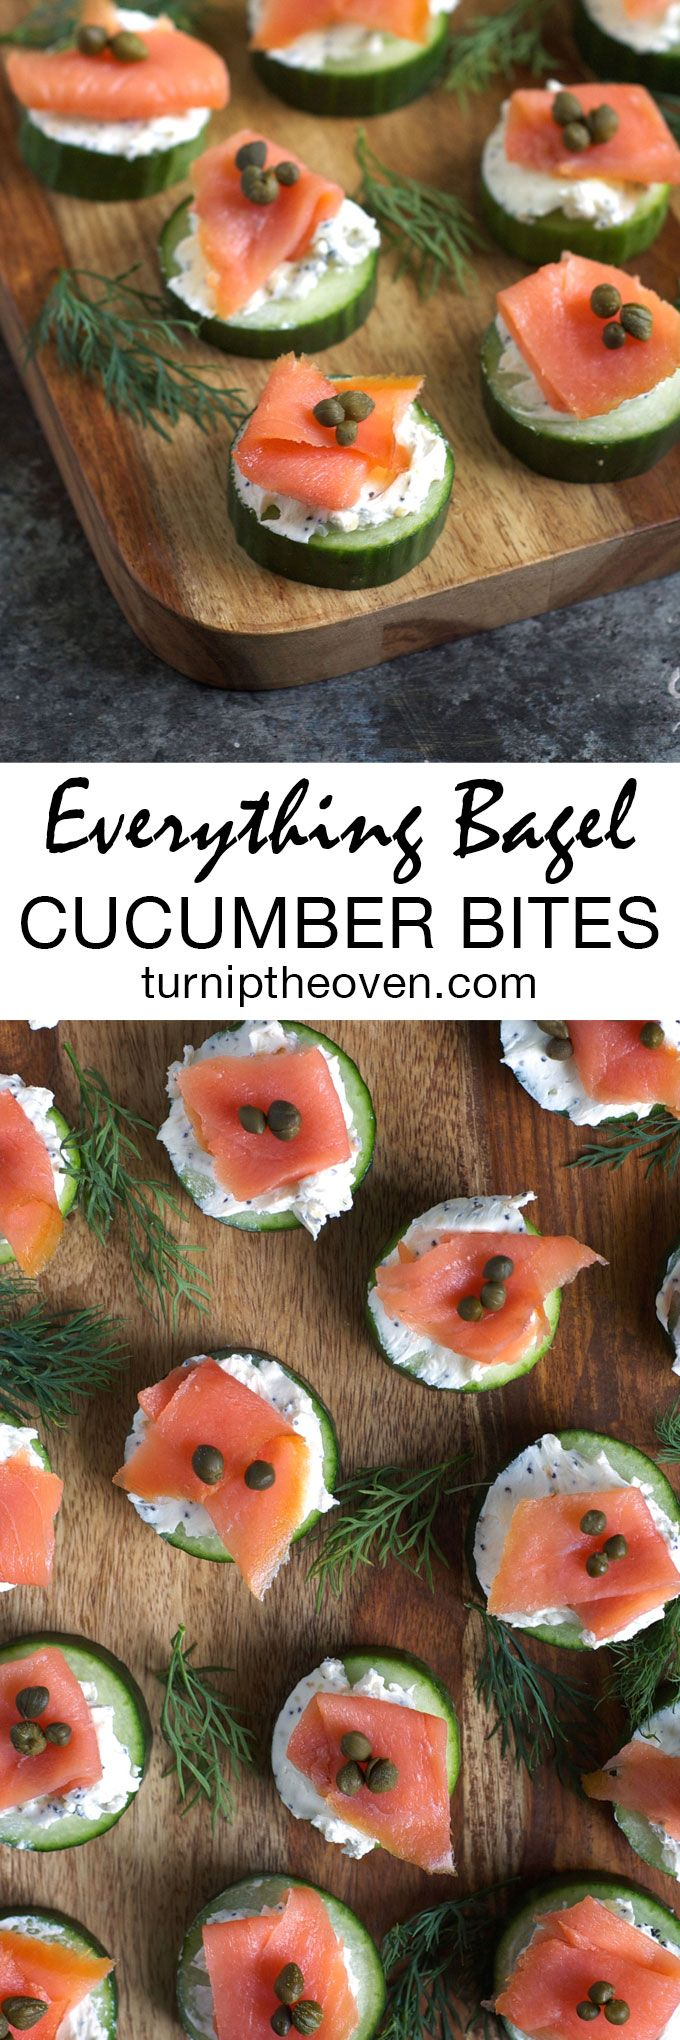 These easy, healthy, and gluten-free cucumber bites are topped with everything bagel-flavored cream cheese and smoked salmon. They just might be the perfect party appetizer!